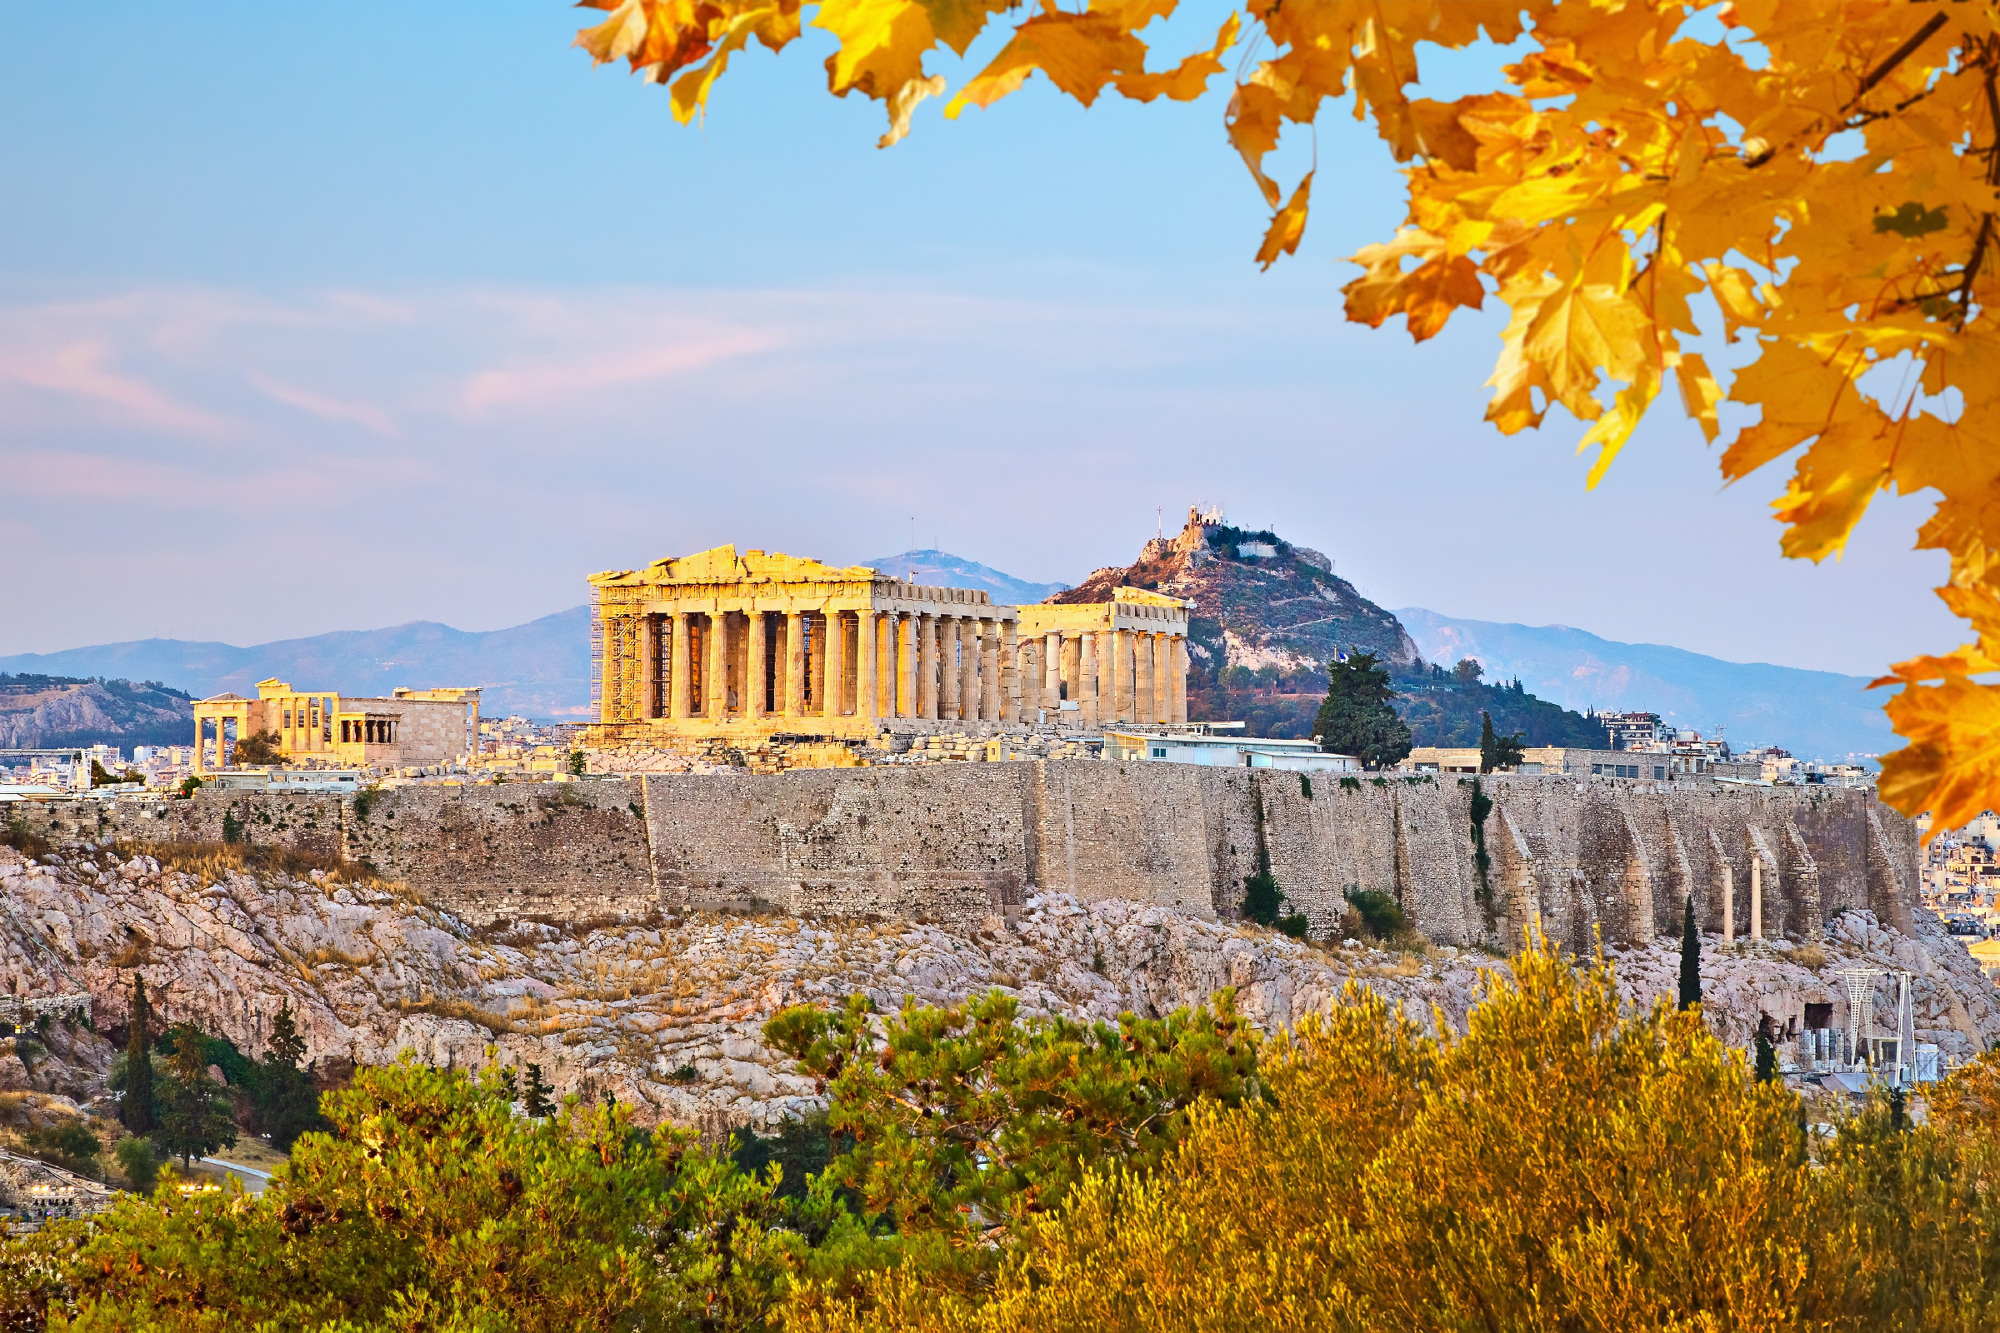 The Acropolis of Athens in Autumn.